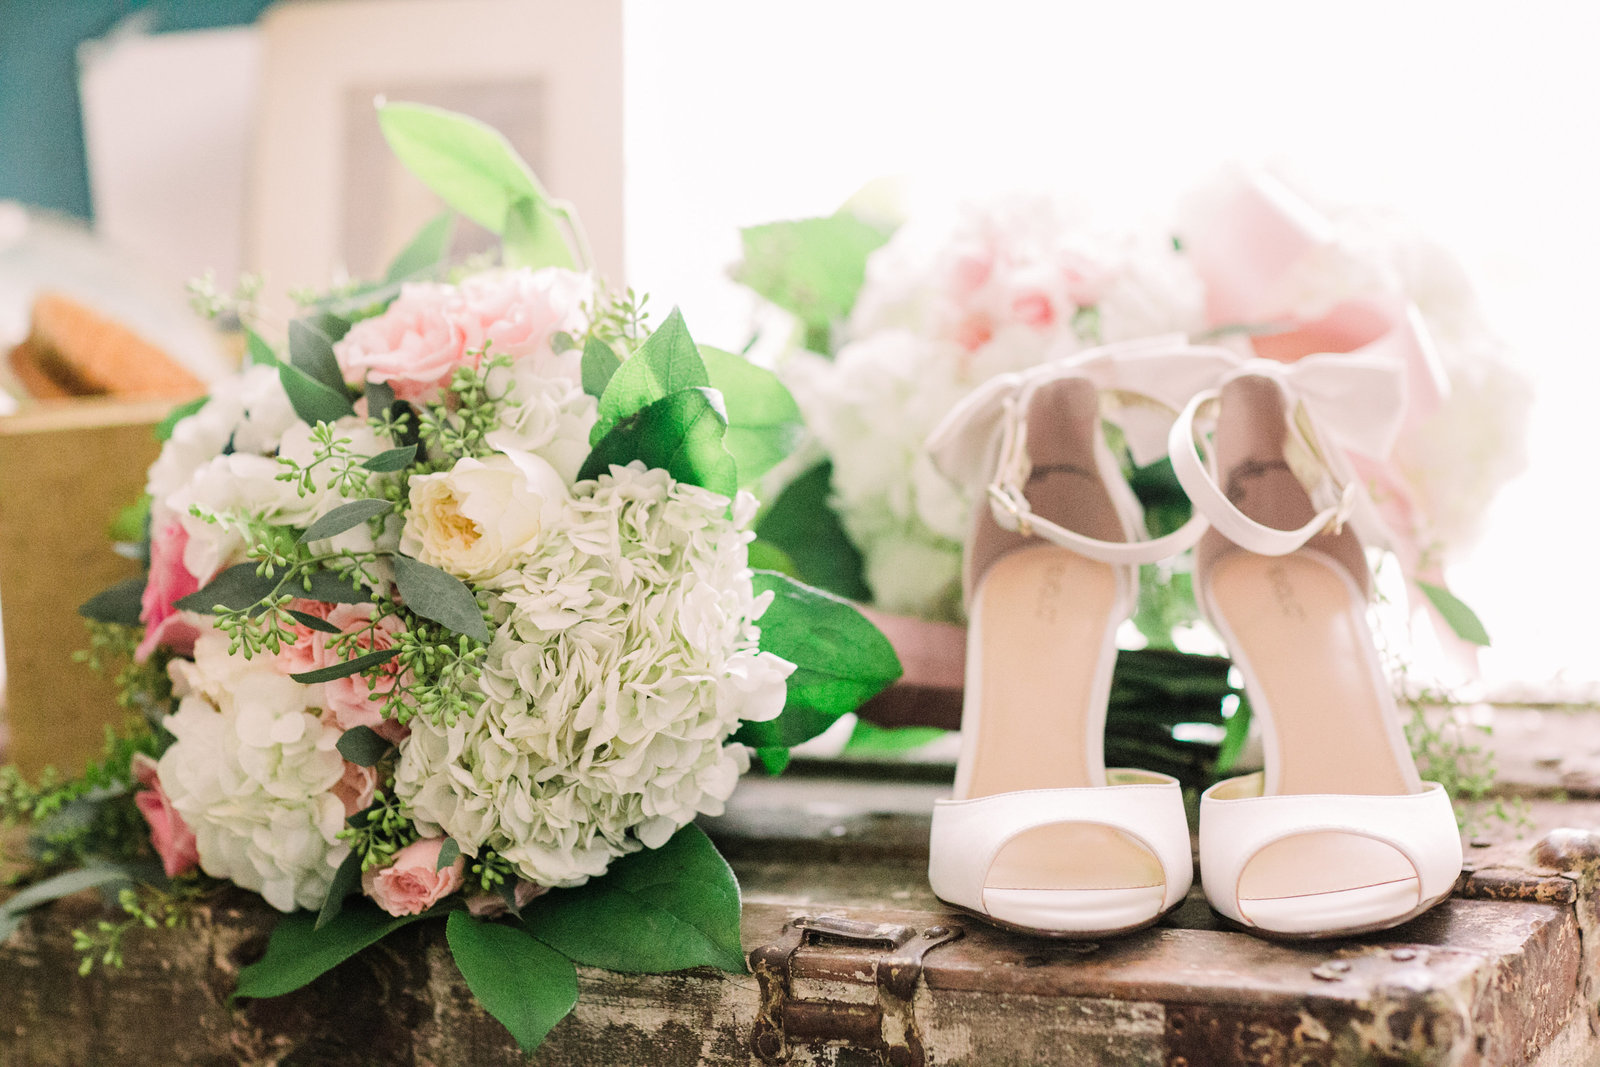 These details of Liz's wedding shoes and flowers pop in natural sunlight in the bridal cabin at Dodson Orchards